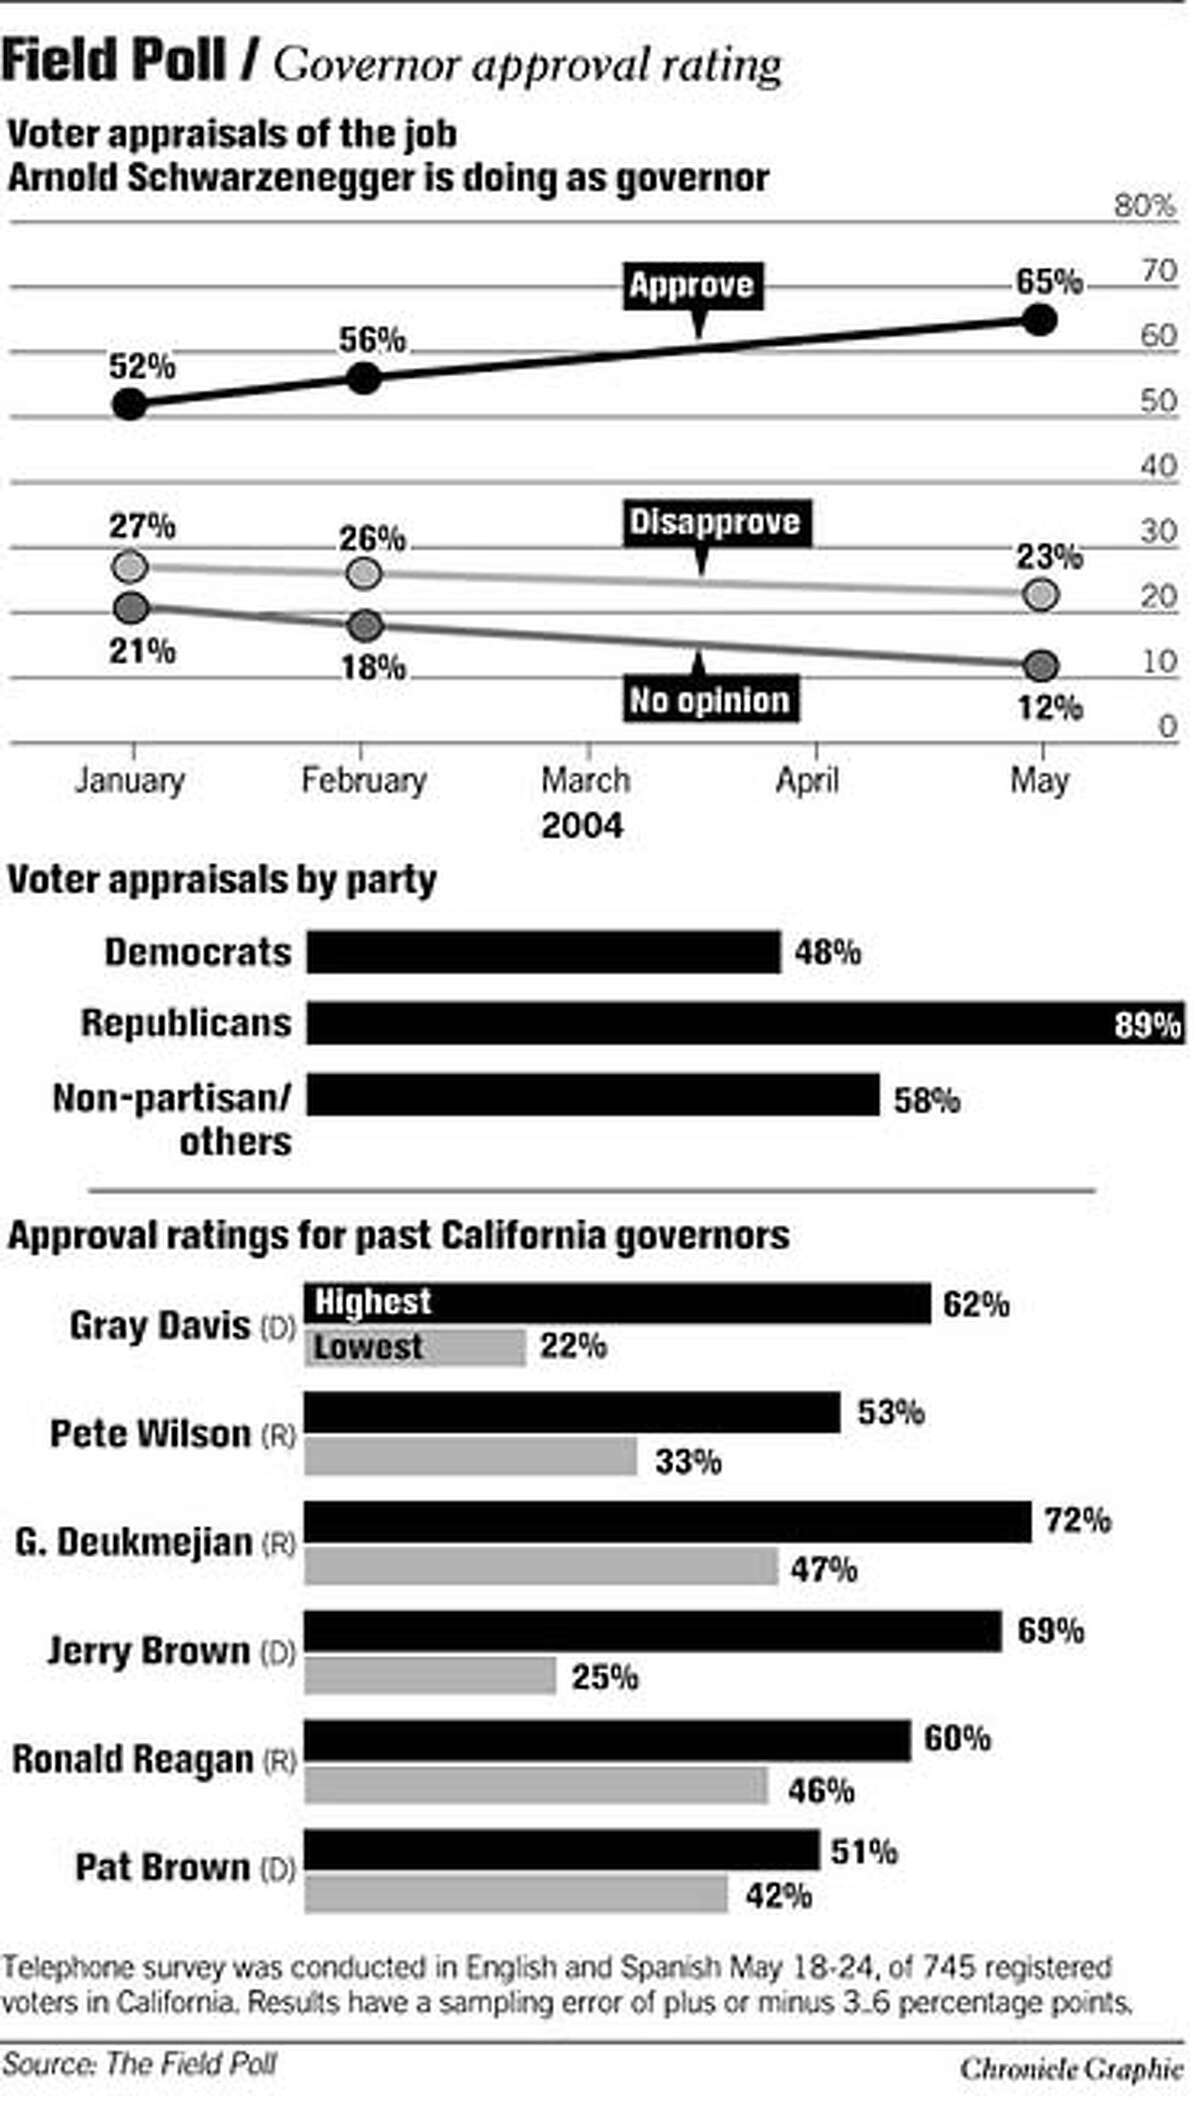 Field Poll: Governor Approval Rating. Chronicle Graphic